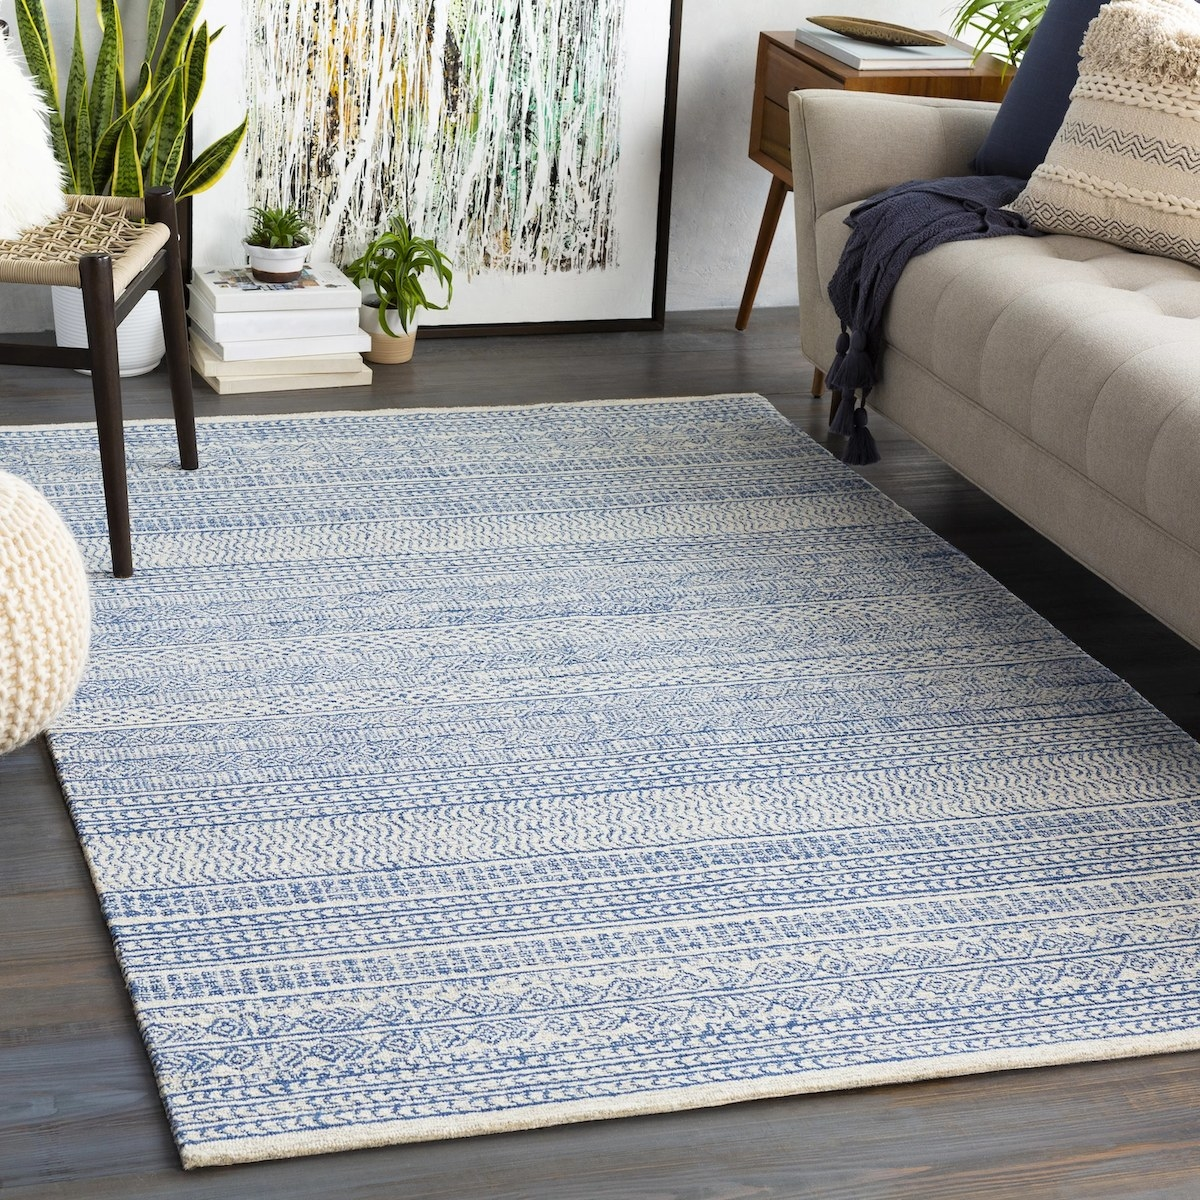 The blue and cream area rug with a geometric pattern in a living room